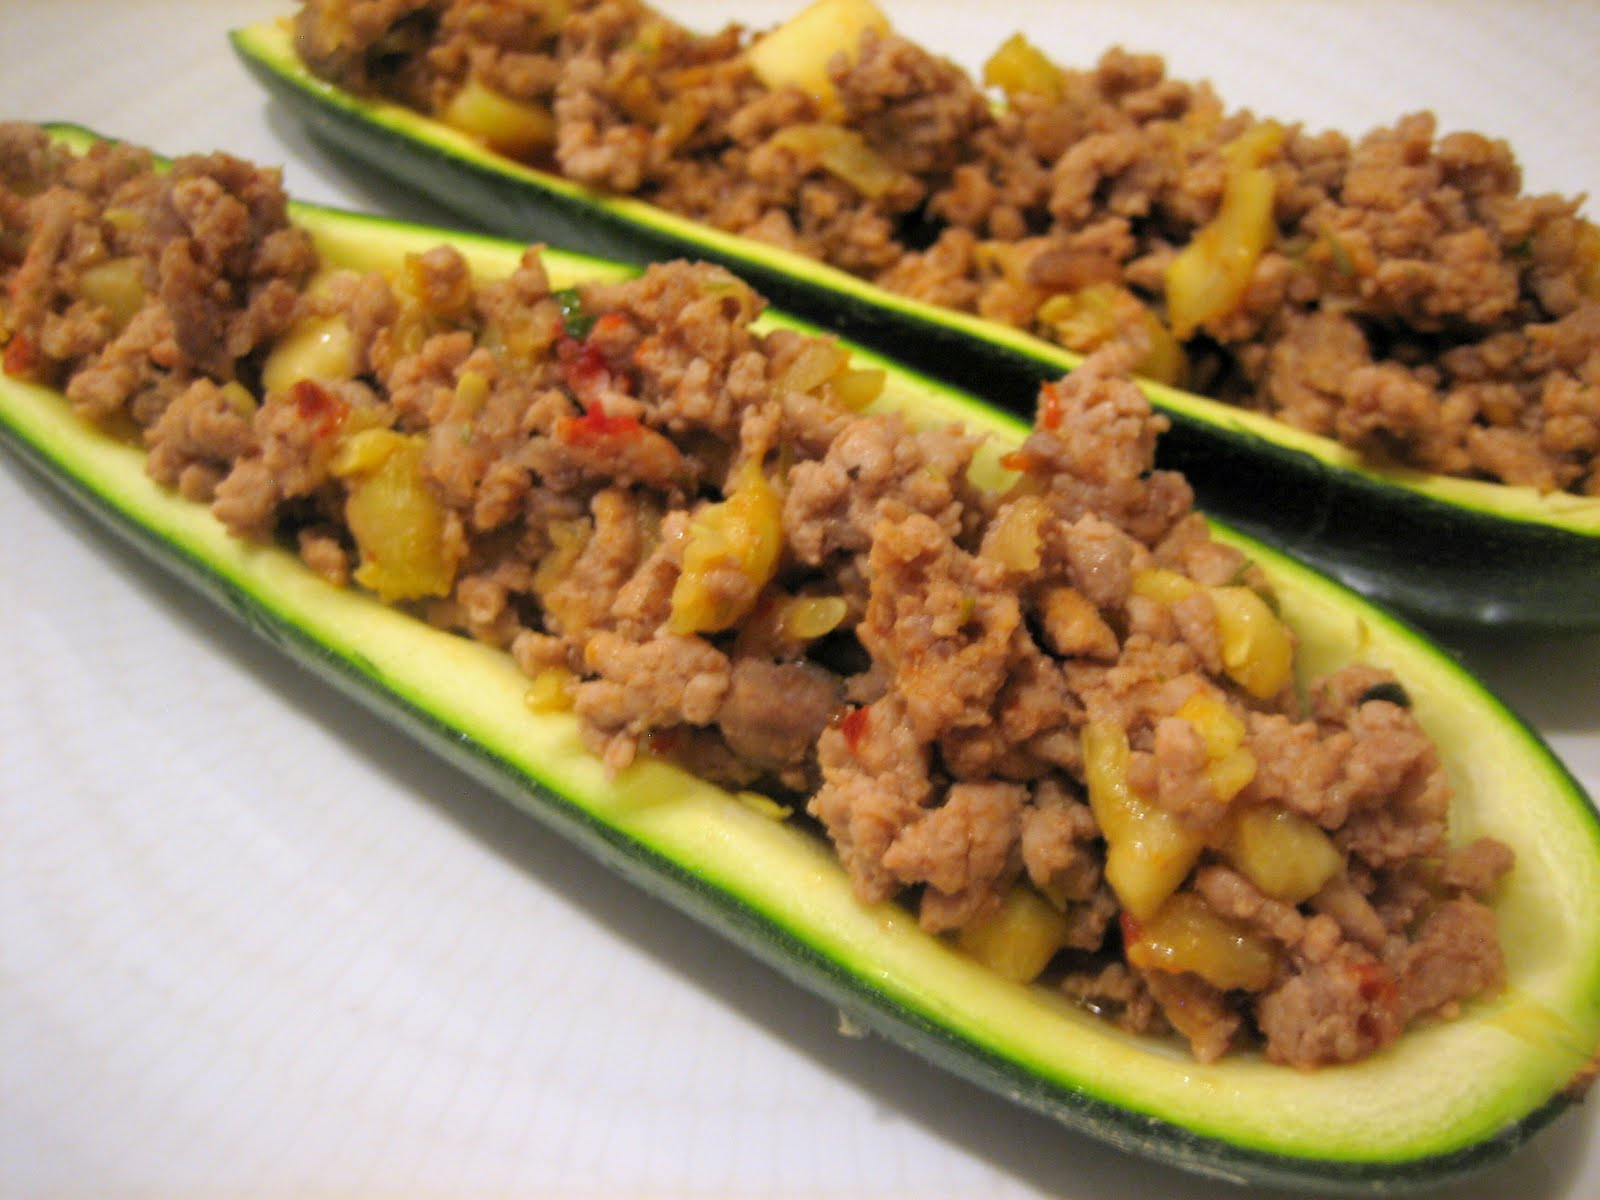 Test Kitchen: Stuffed Zucchini Boats